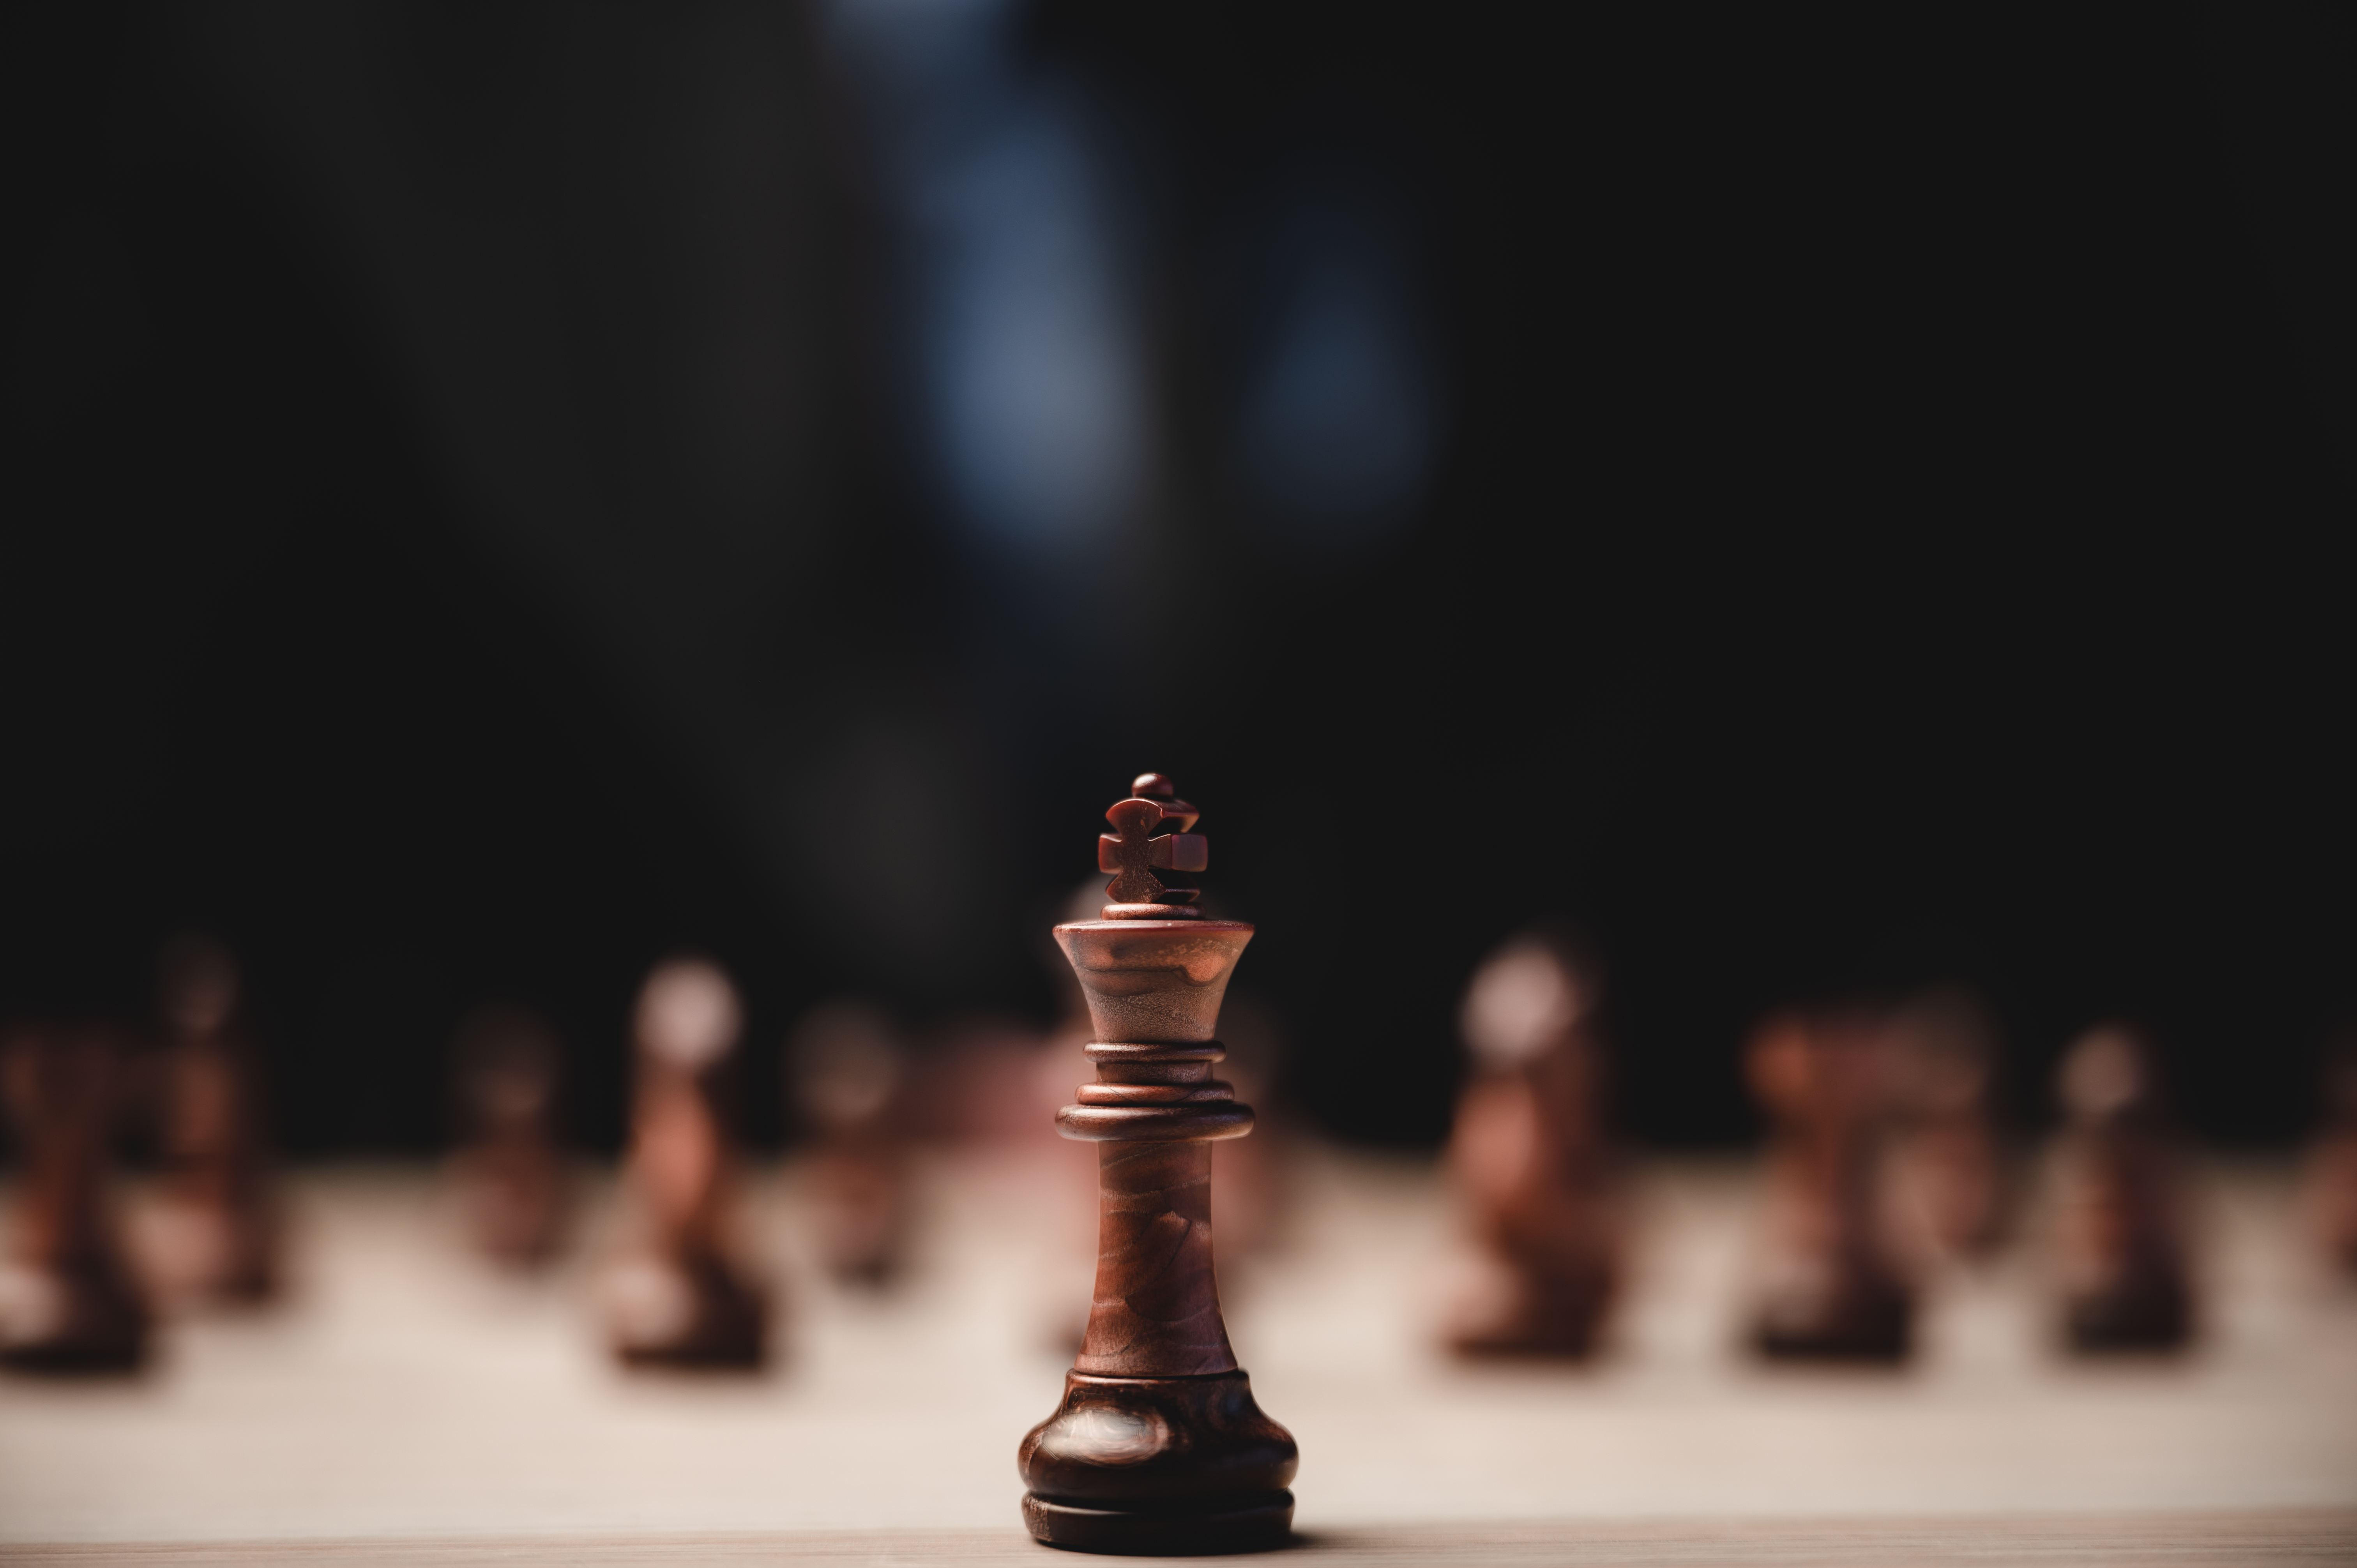 chess-strategy-business-leadership-team-success-concept-game-king-leader-competition-with-teamwork-power-challenge-pawn-piece-playing-board-victory-intelligence-chessboard